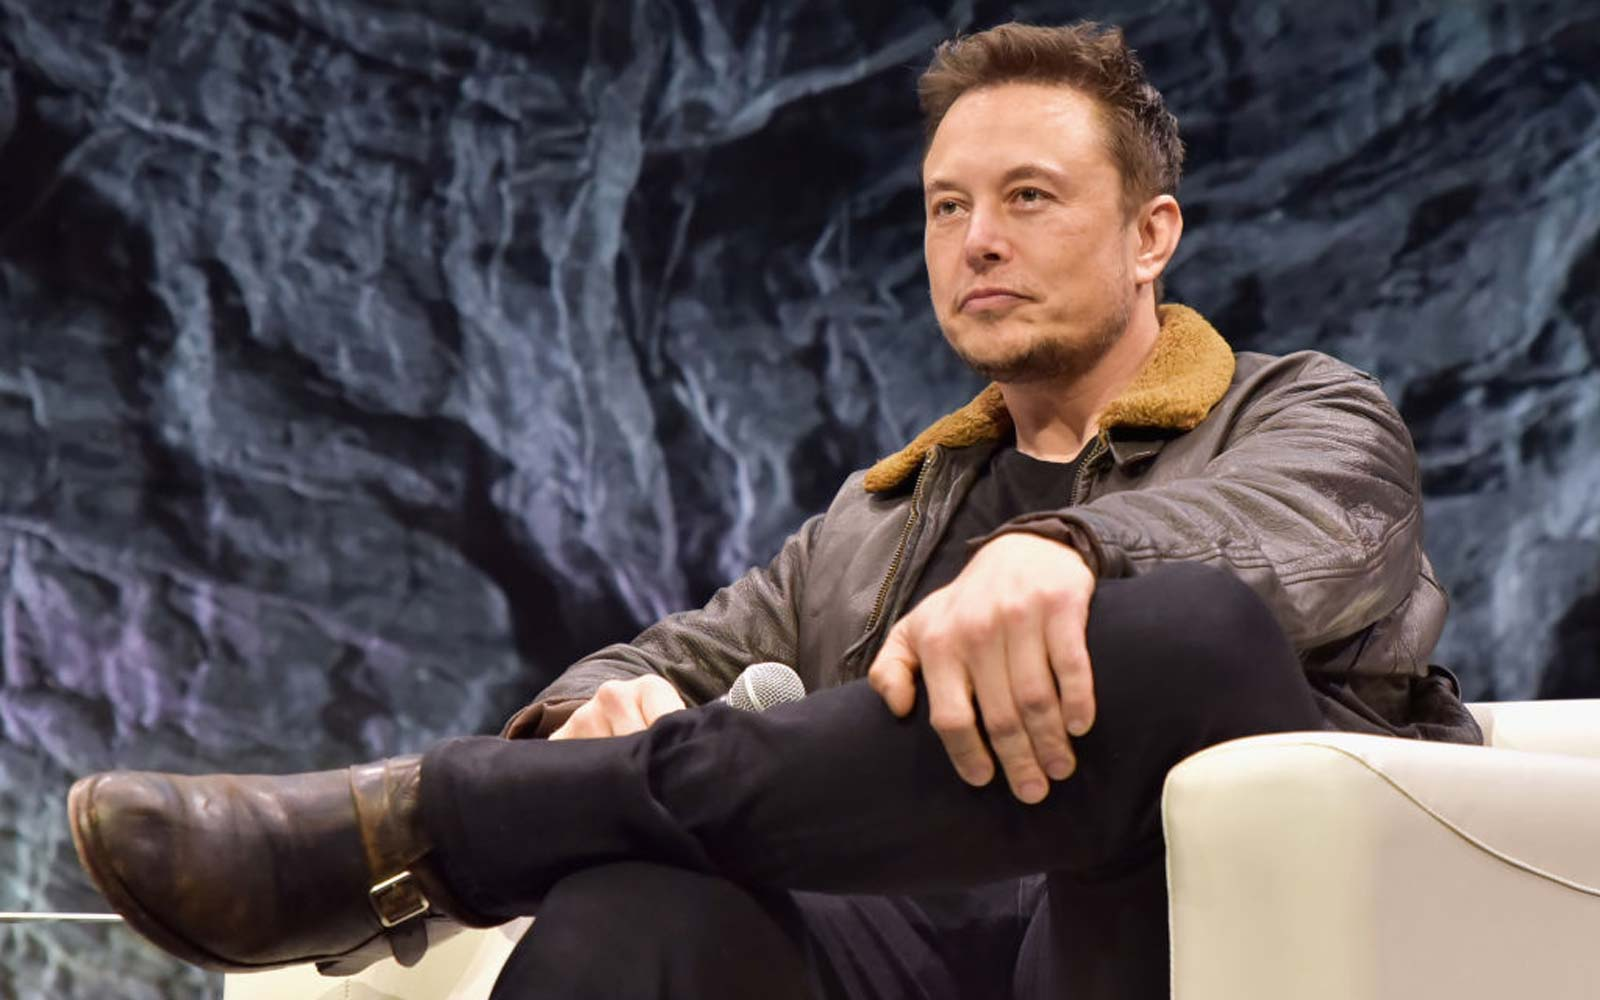 Elon Musk Says People Need to Work Around 80 Hours Per Week to Change the World